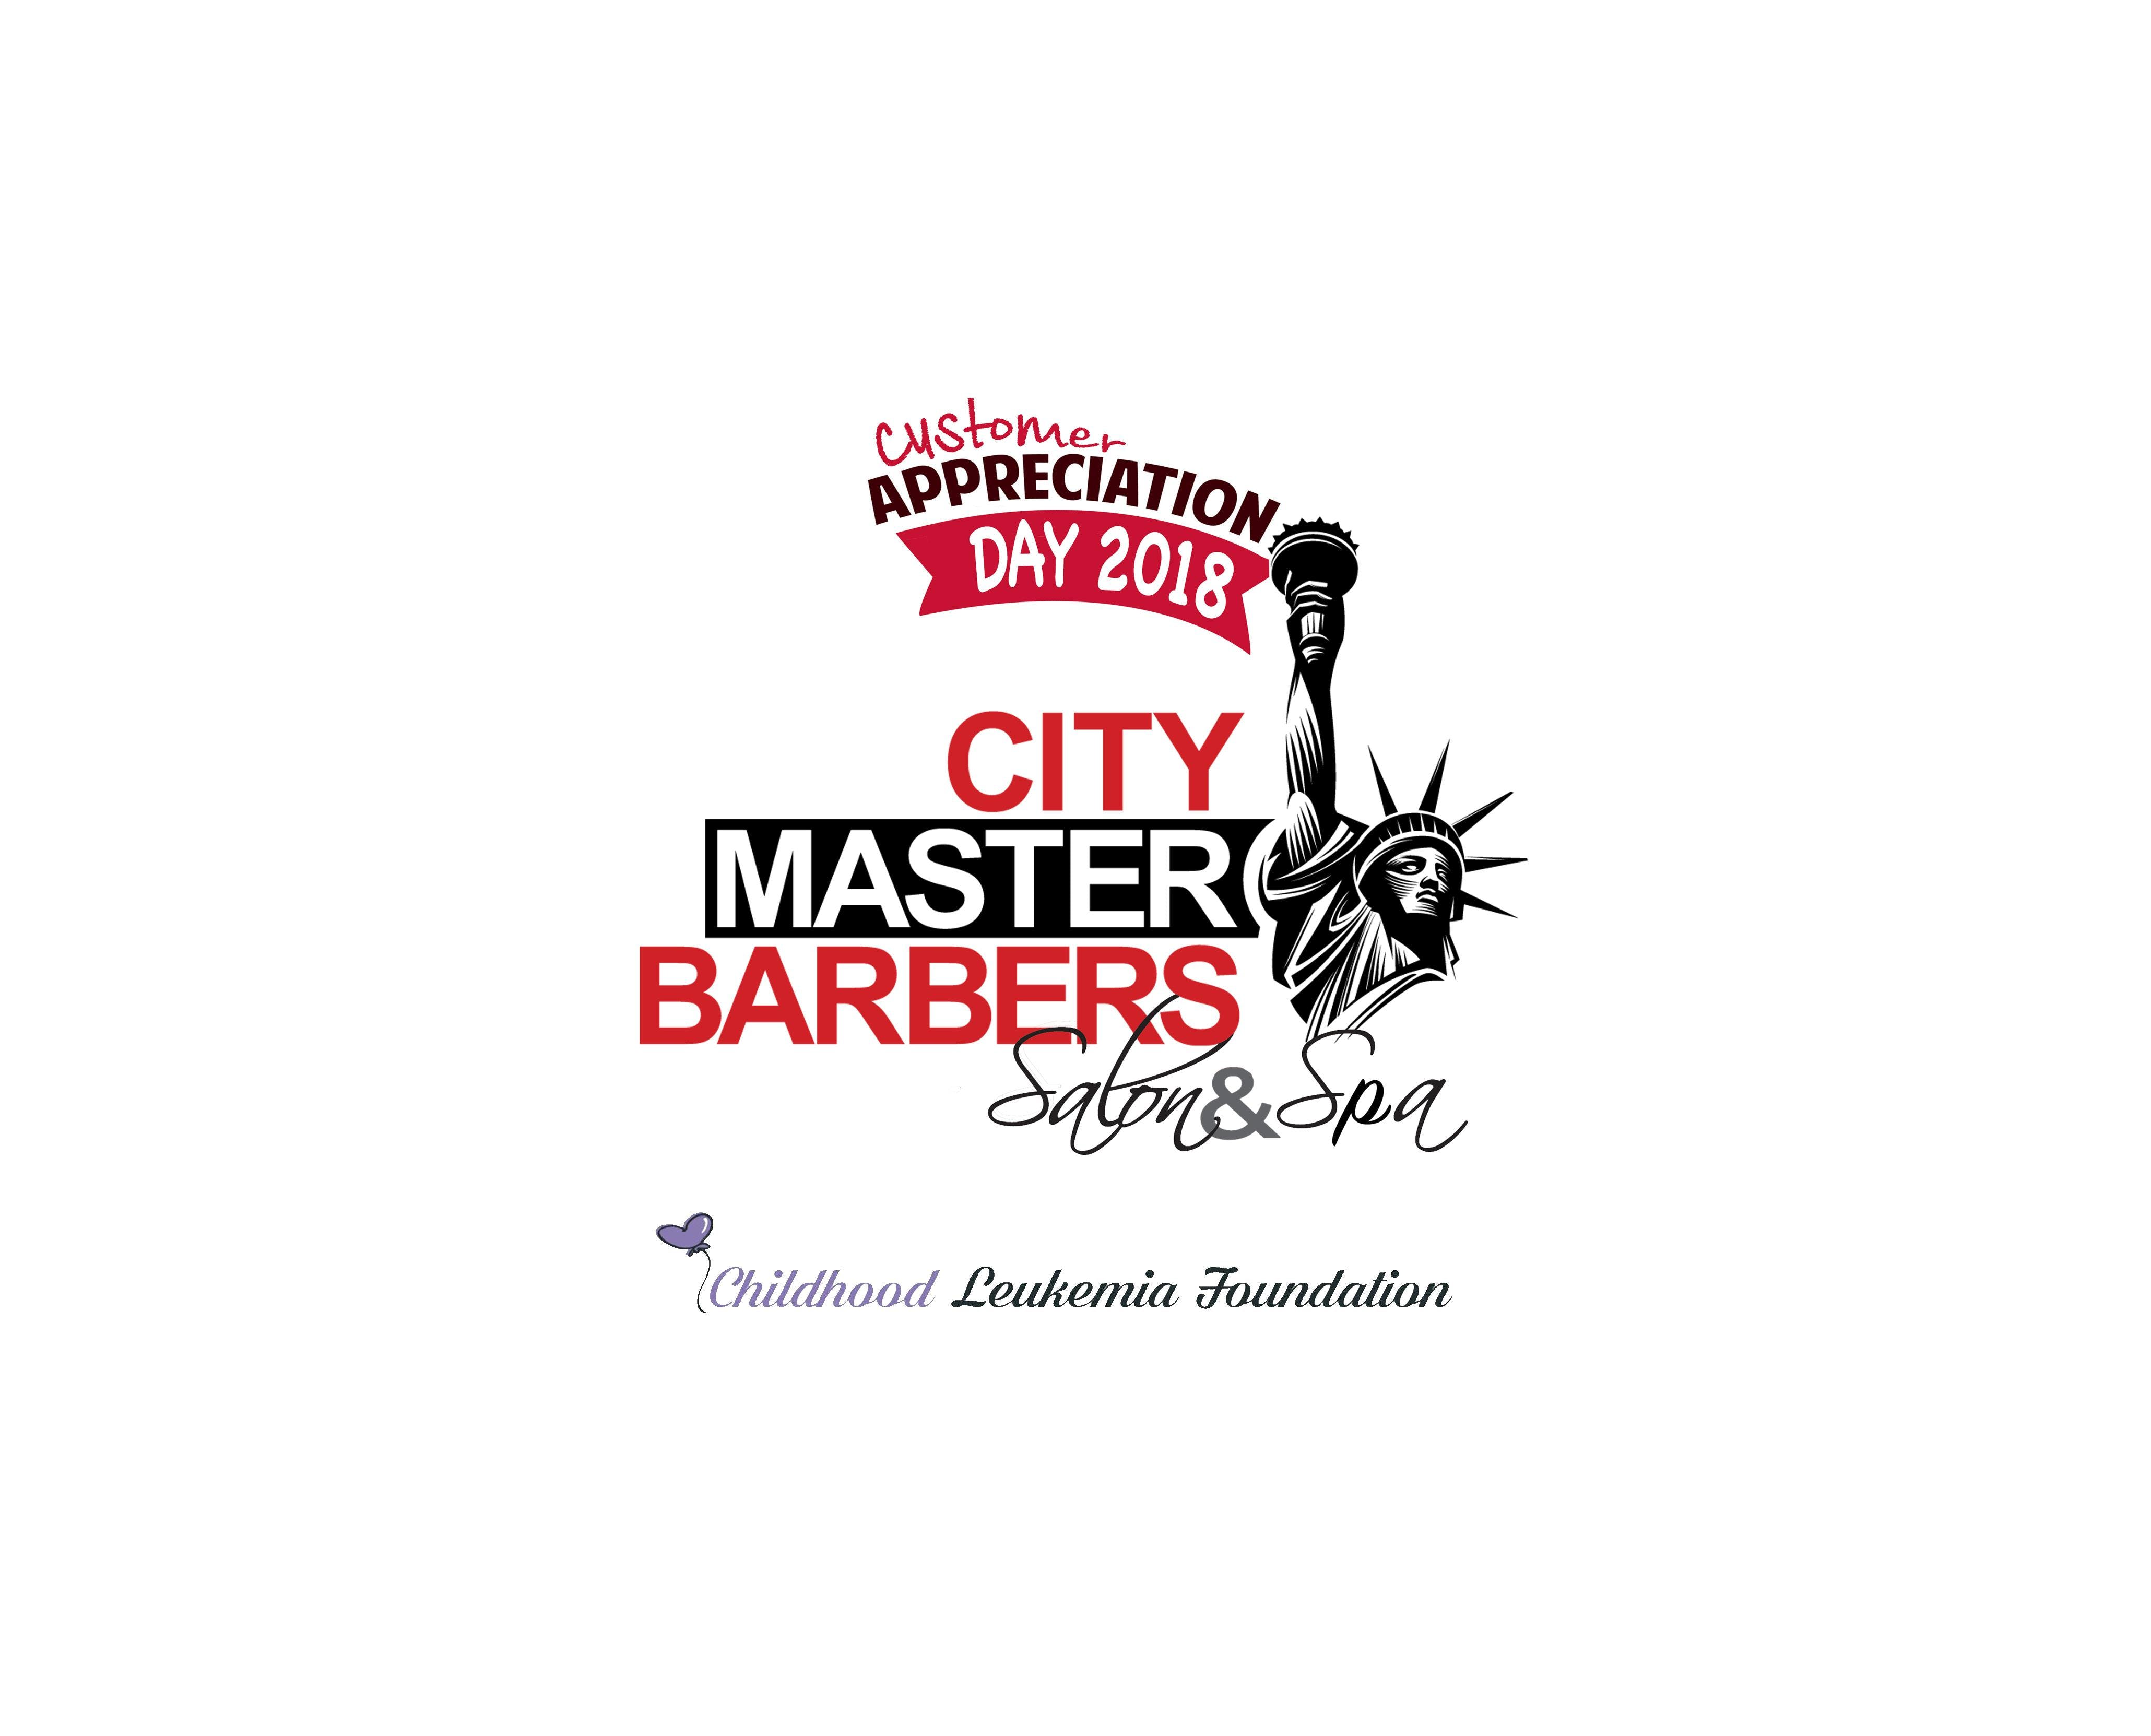 City Master Barbers Community Fundraiser for